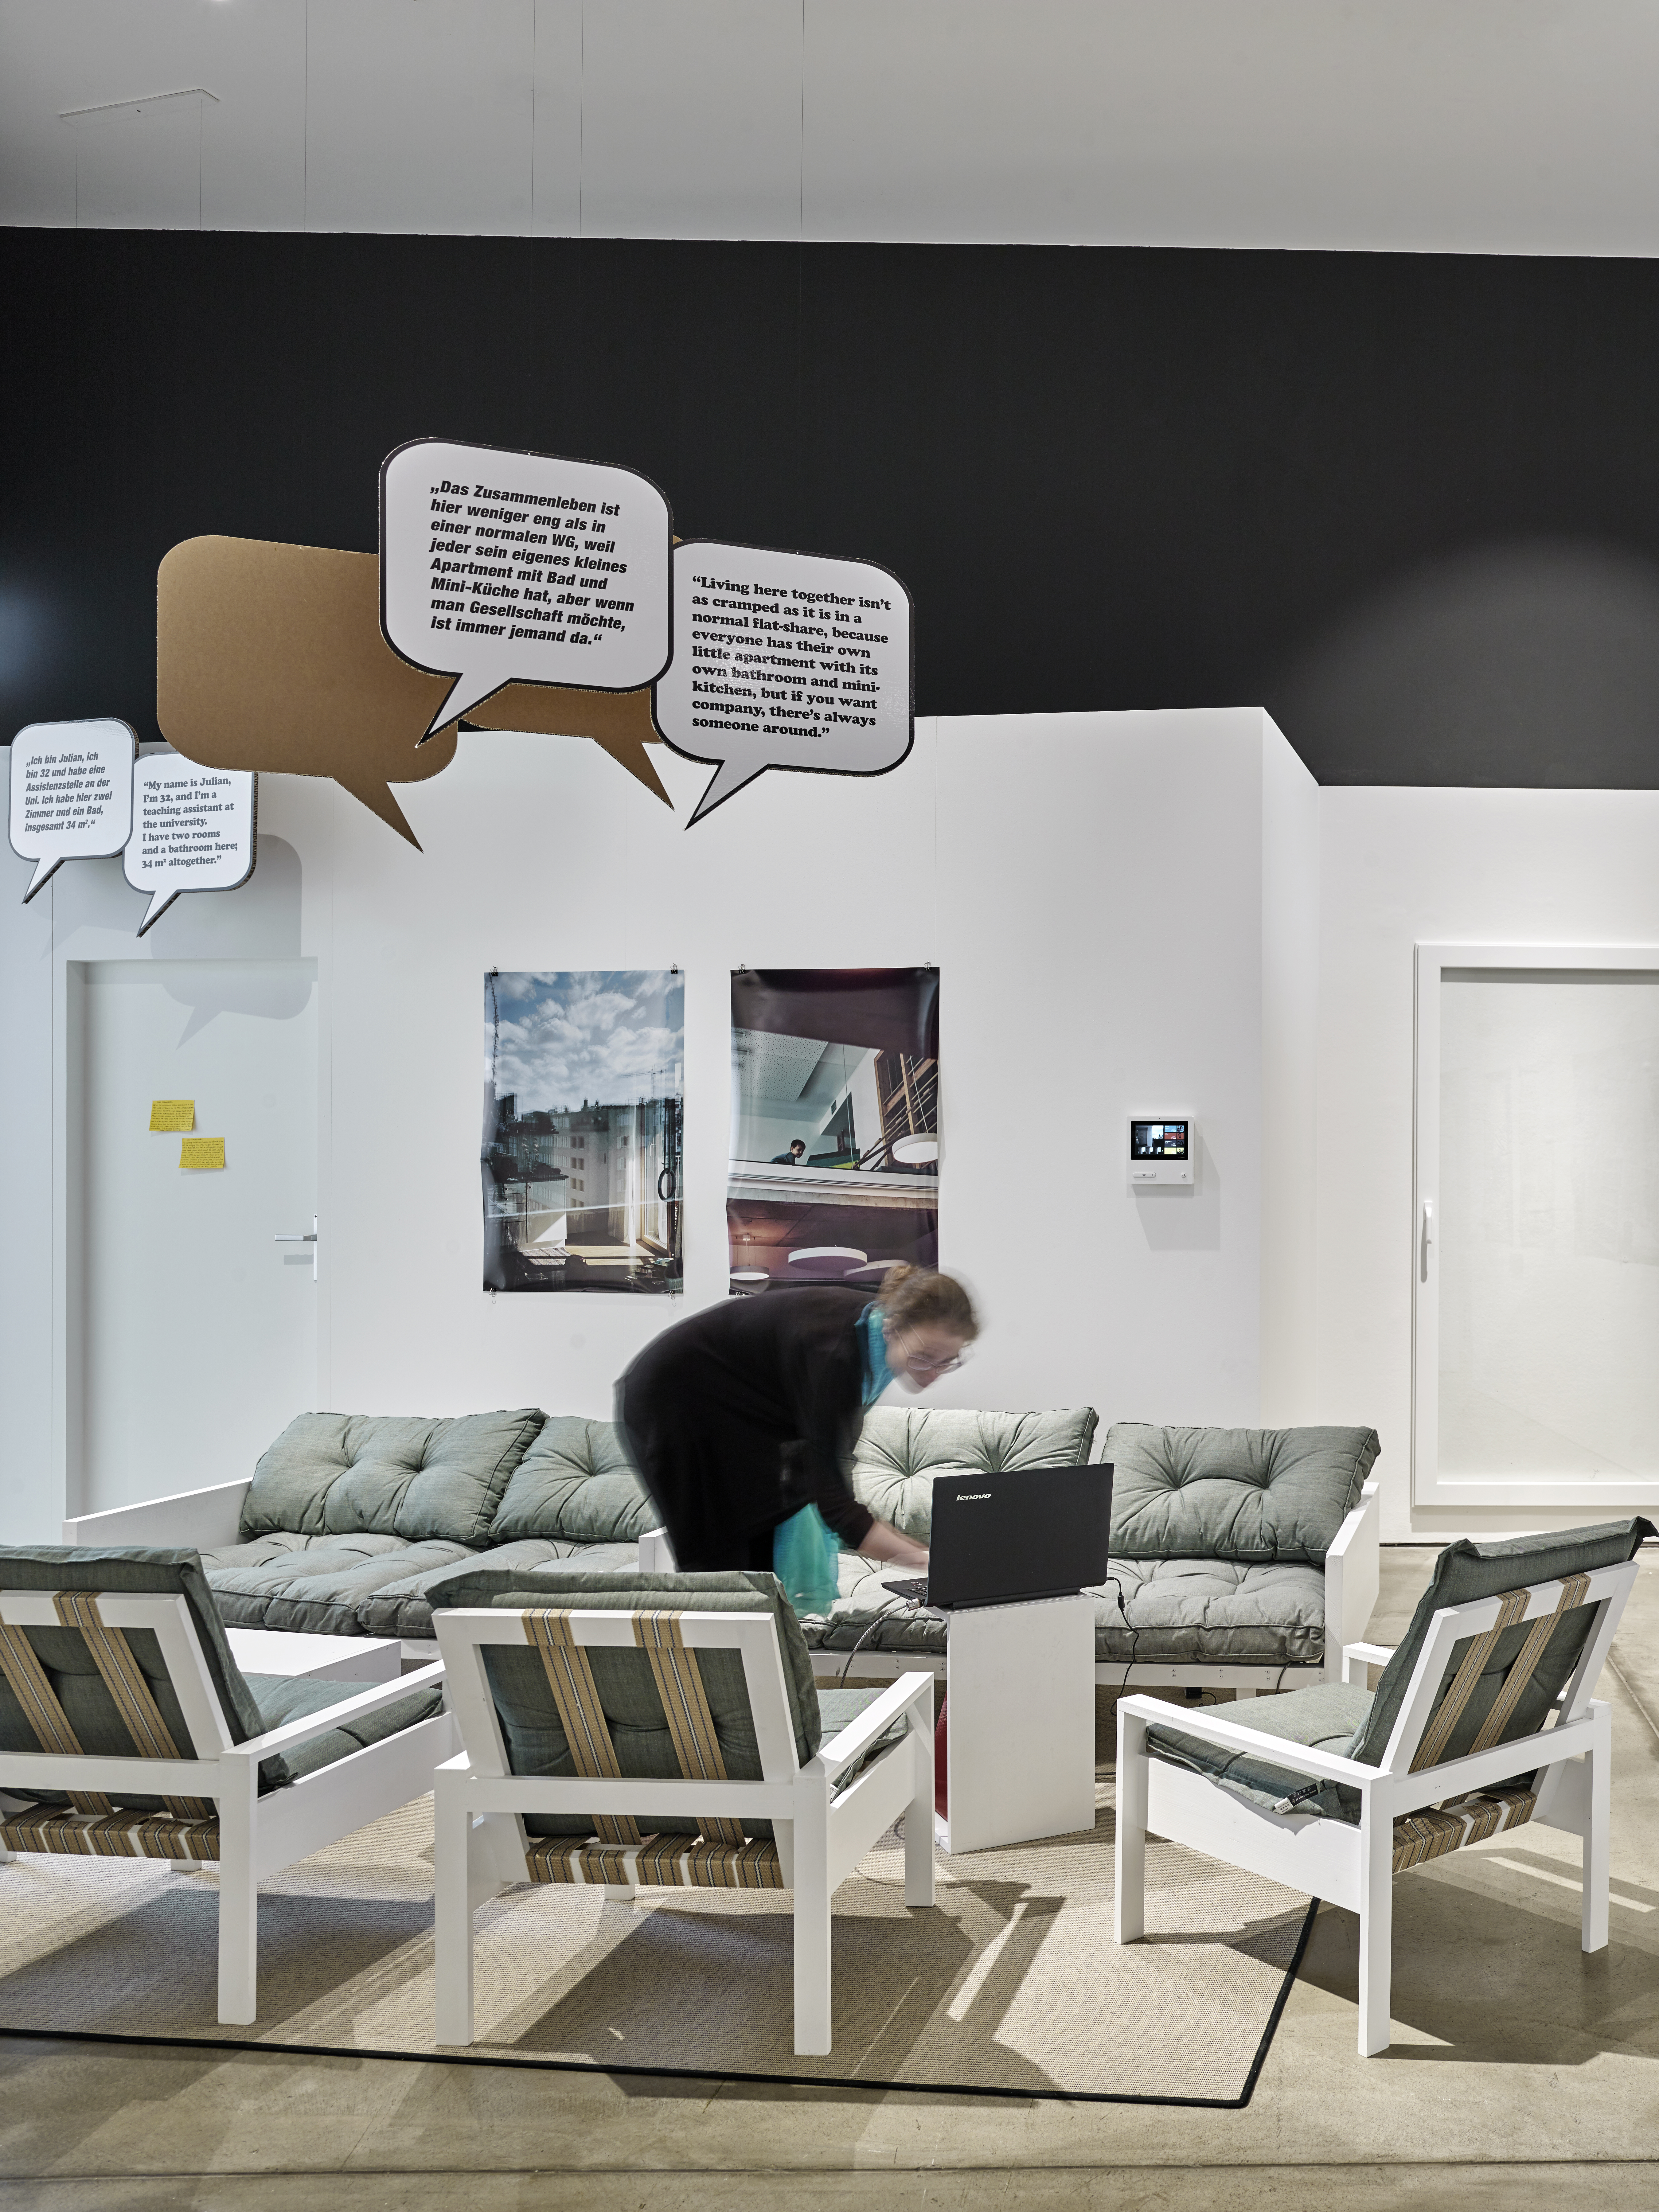 The vitra design museum shows the exhibition together stylepark in quotes the inhabitants report their experiences solutioingenieria Images